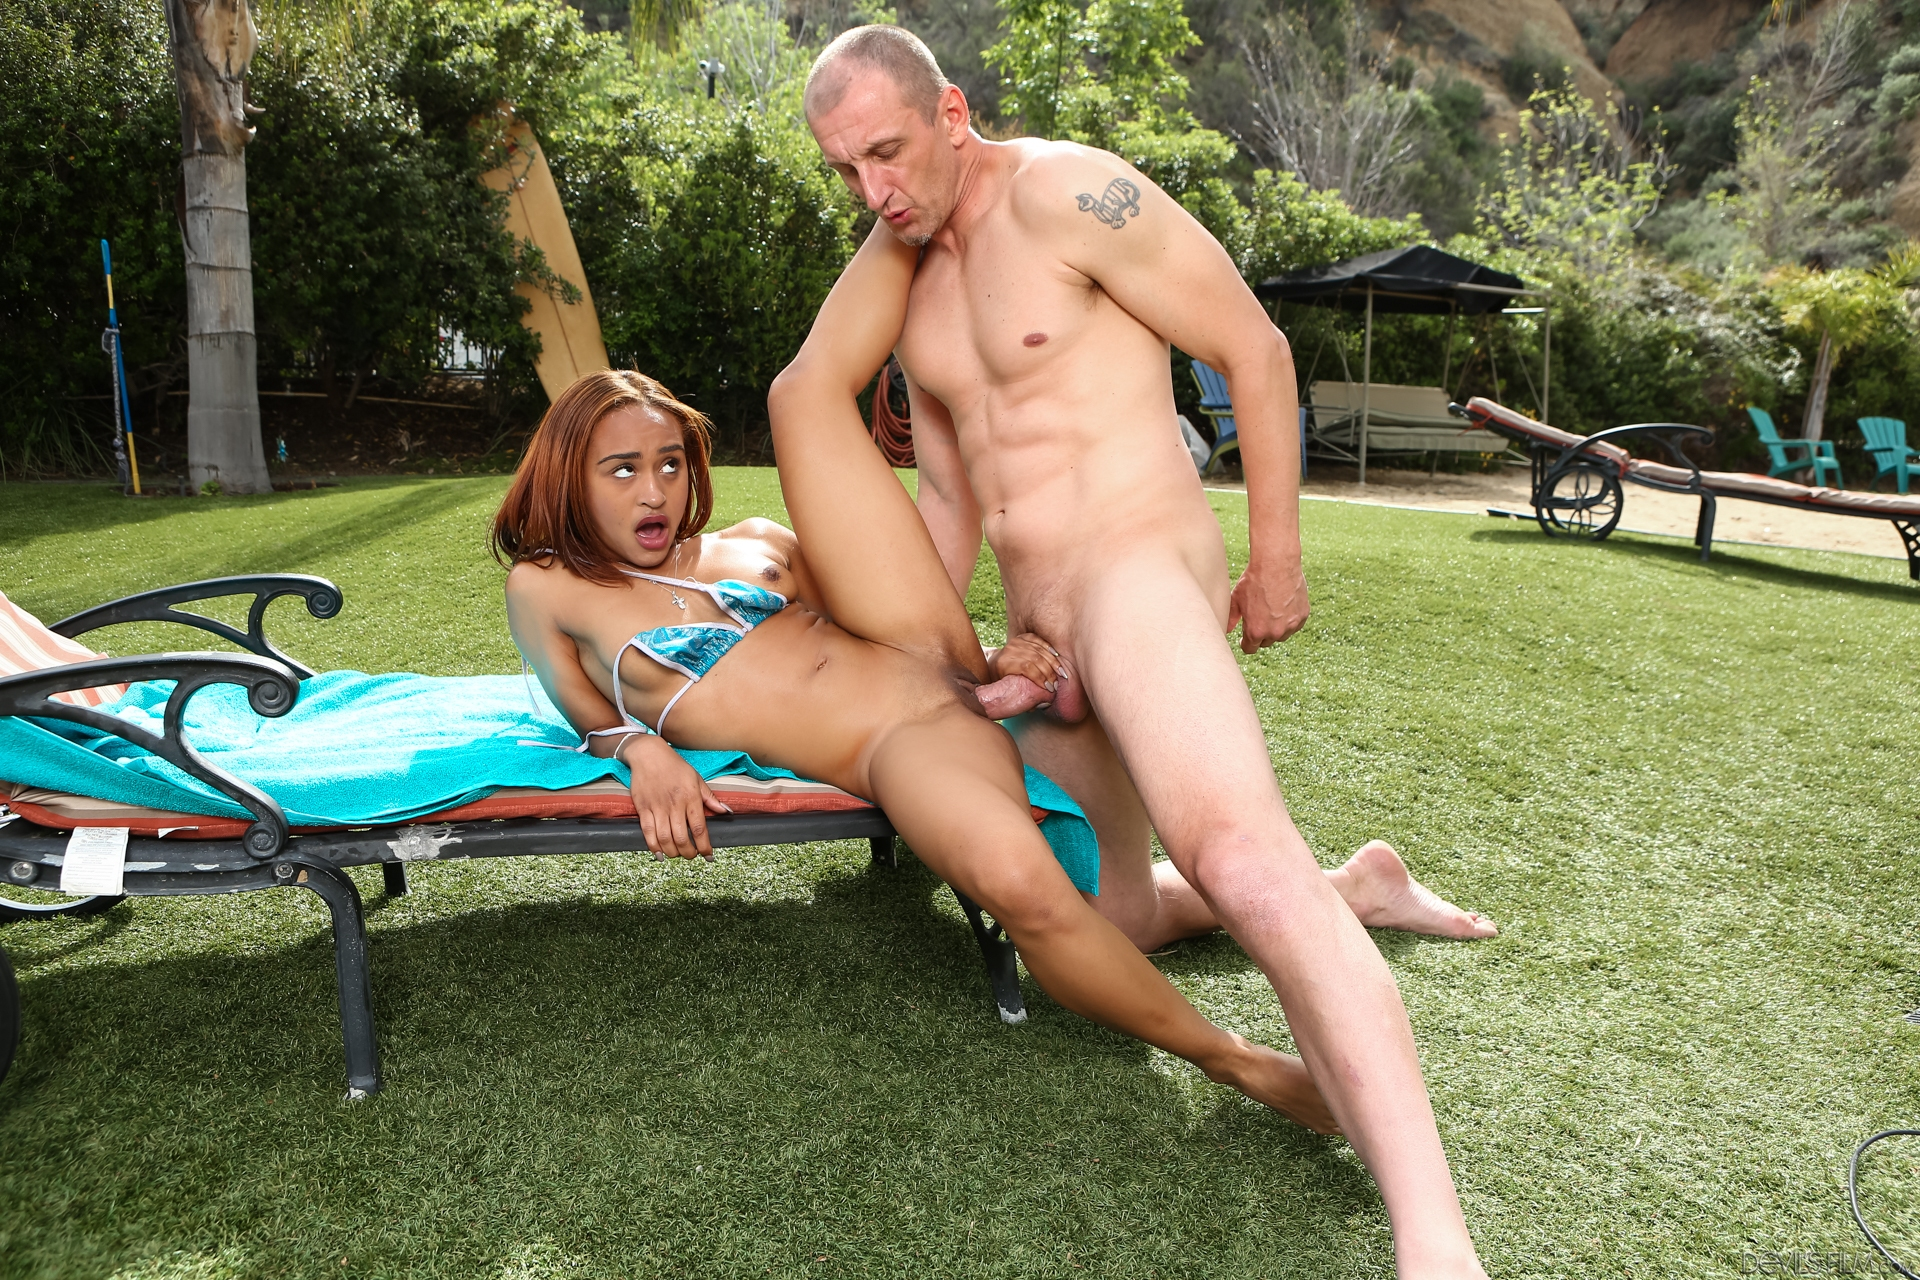 T-girl Gang Hook-up And Assfuck Outdoors